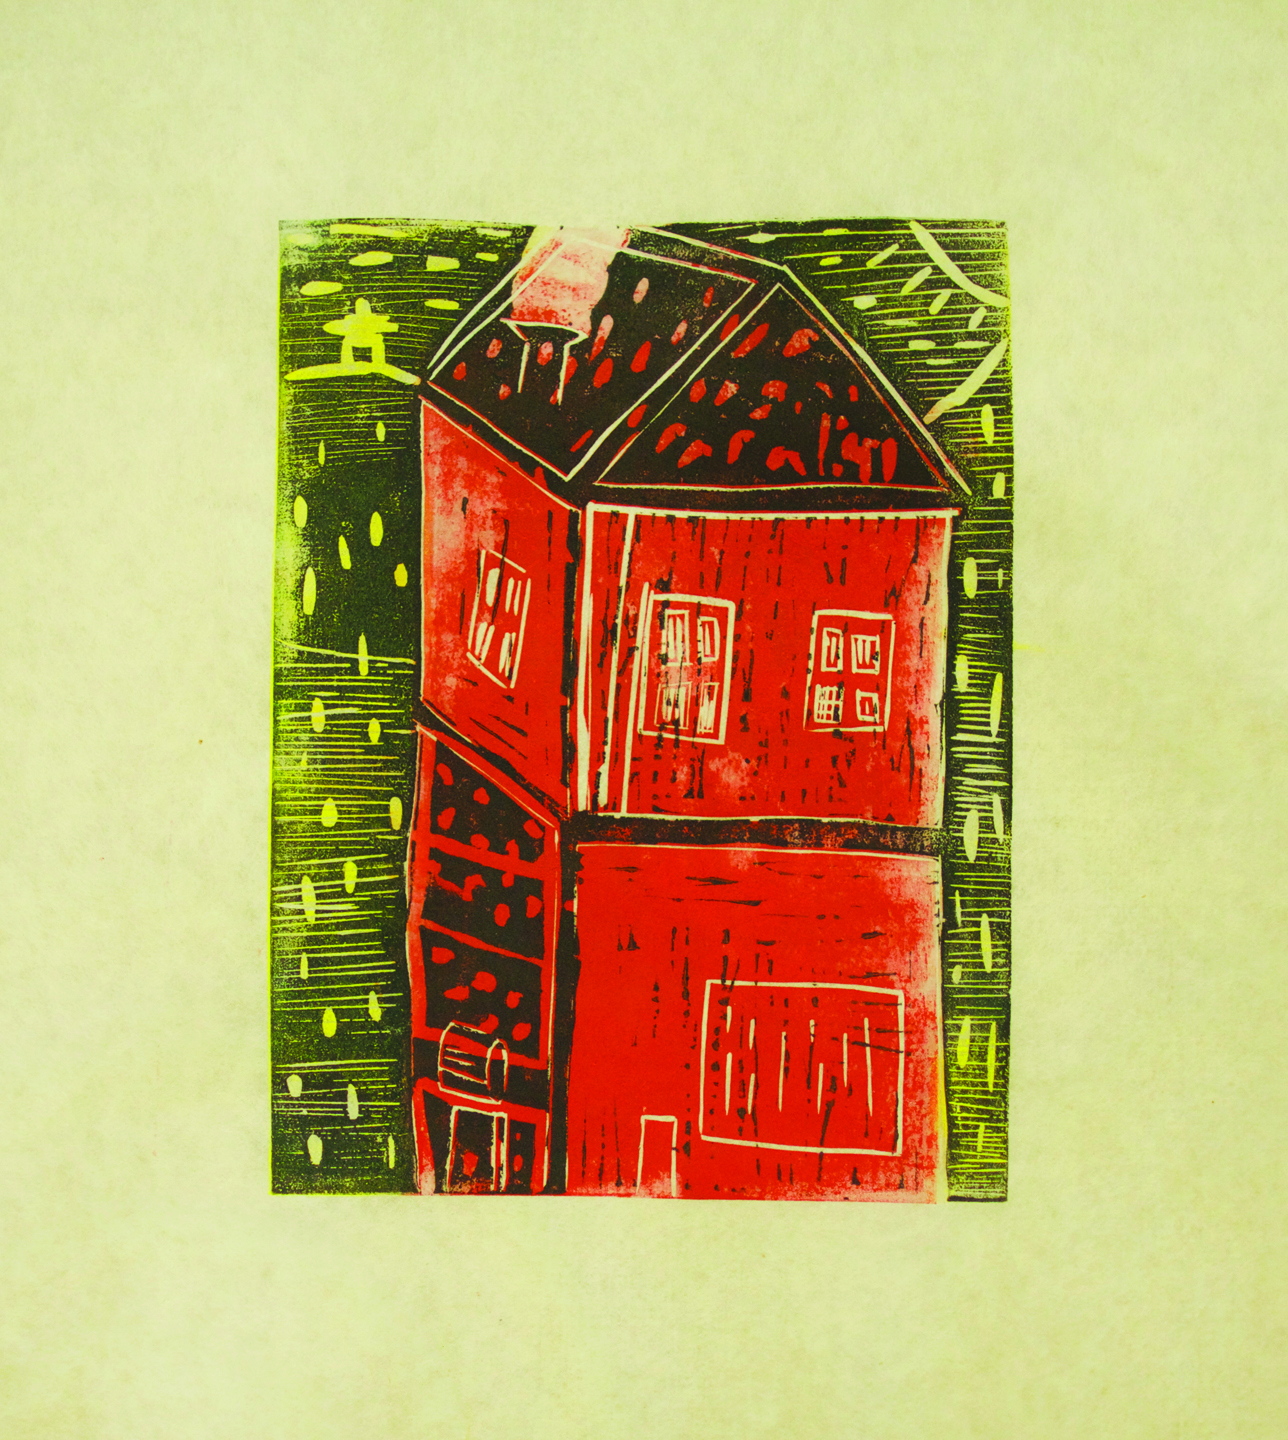 """Saaki Nuna, 12 years old, 11x14"""", 3-layer linocut  """"The first thing that came to my head was a building with a restaurant in the bottom and a home on top. In this building the restaurant owner lives upstairs. The restaurant owner is alone, he only has a dog. His name is Igloo. The building is in Kinngait. Kinngait is the name of my town, it means """"many mountains."""" There used to be a hotel called """"Kinngait Inn,"""" but now it's closed down. It ran out of money. I miss this place because they served poutine, hamburgers and subs. My dream is to create """"Saaki Inn,"""" a new hotel and restaurant.   I printed four impressions of this linocut block. Two were red, yellow, and black, and two were yellow, green and black. I thought about a rainbow and I wanted to try the print in different colours.  A reduction print is created by carving out some parts of the image, printing one layer, and then carving into the block again to print another layer. This is my first reduction print."""""""